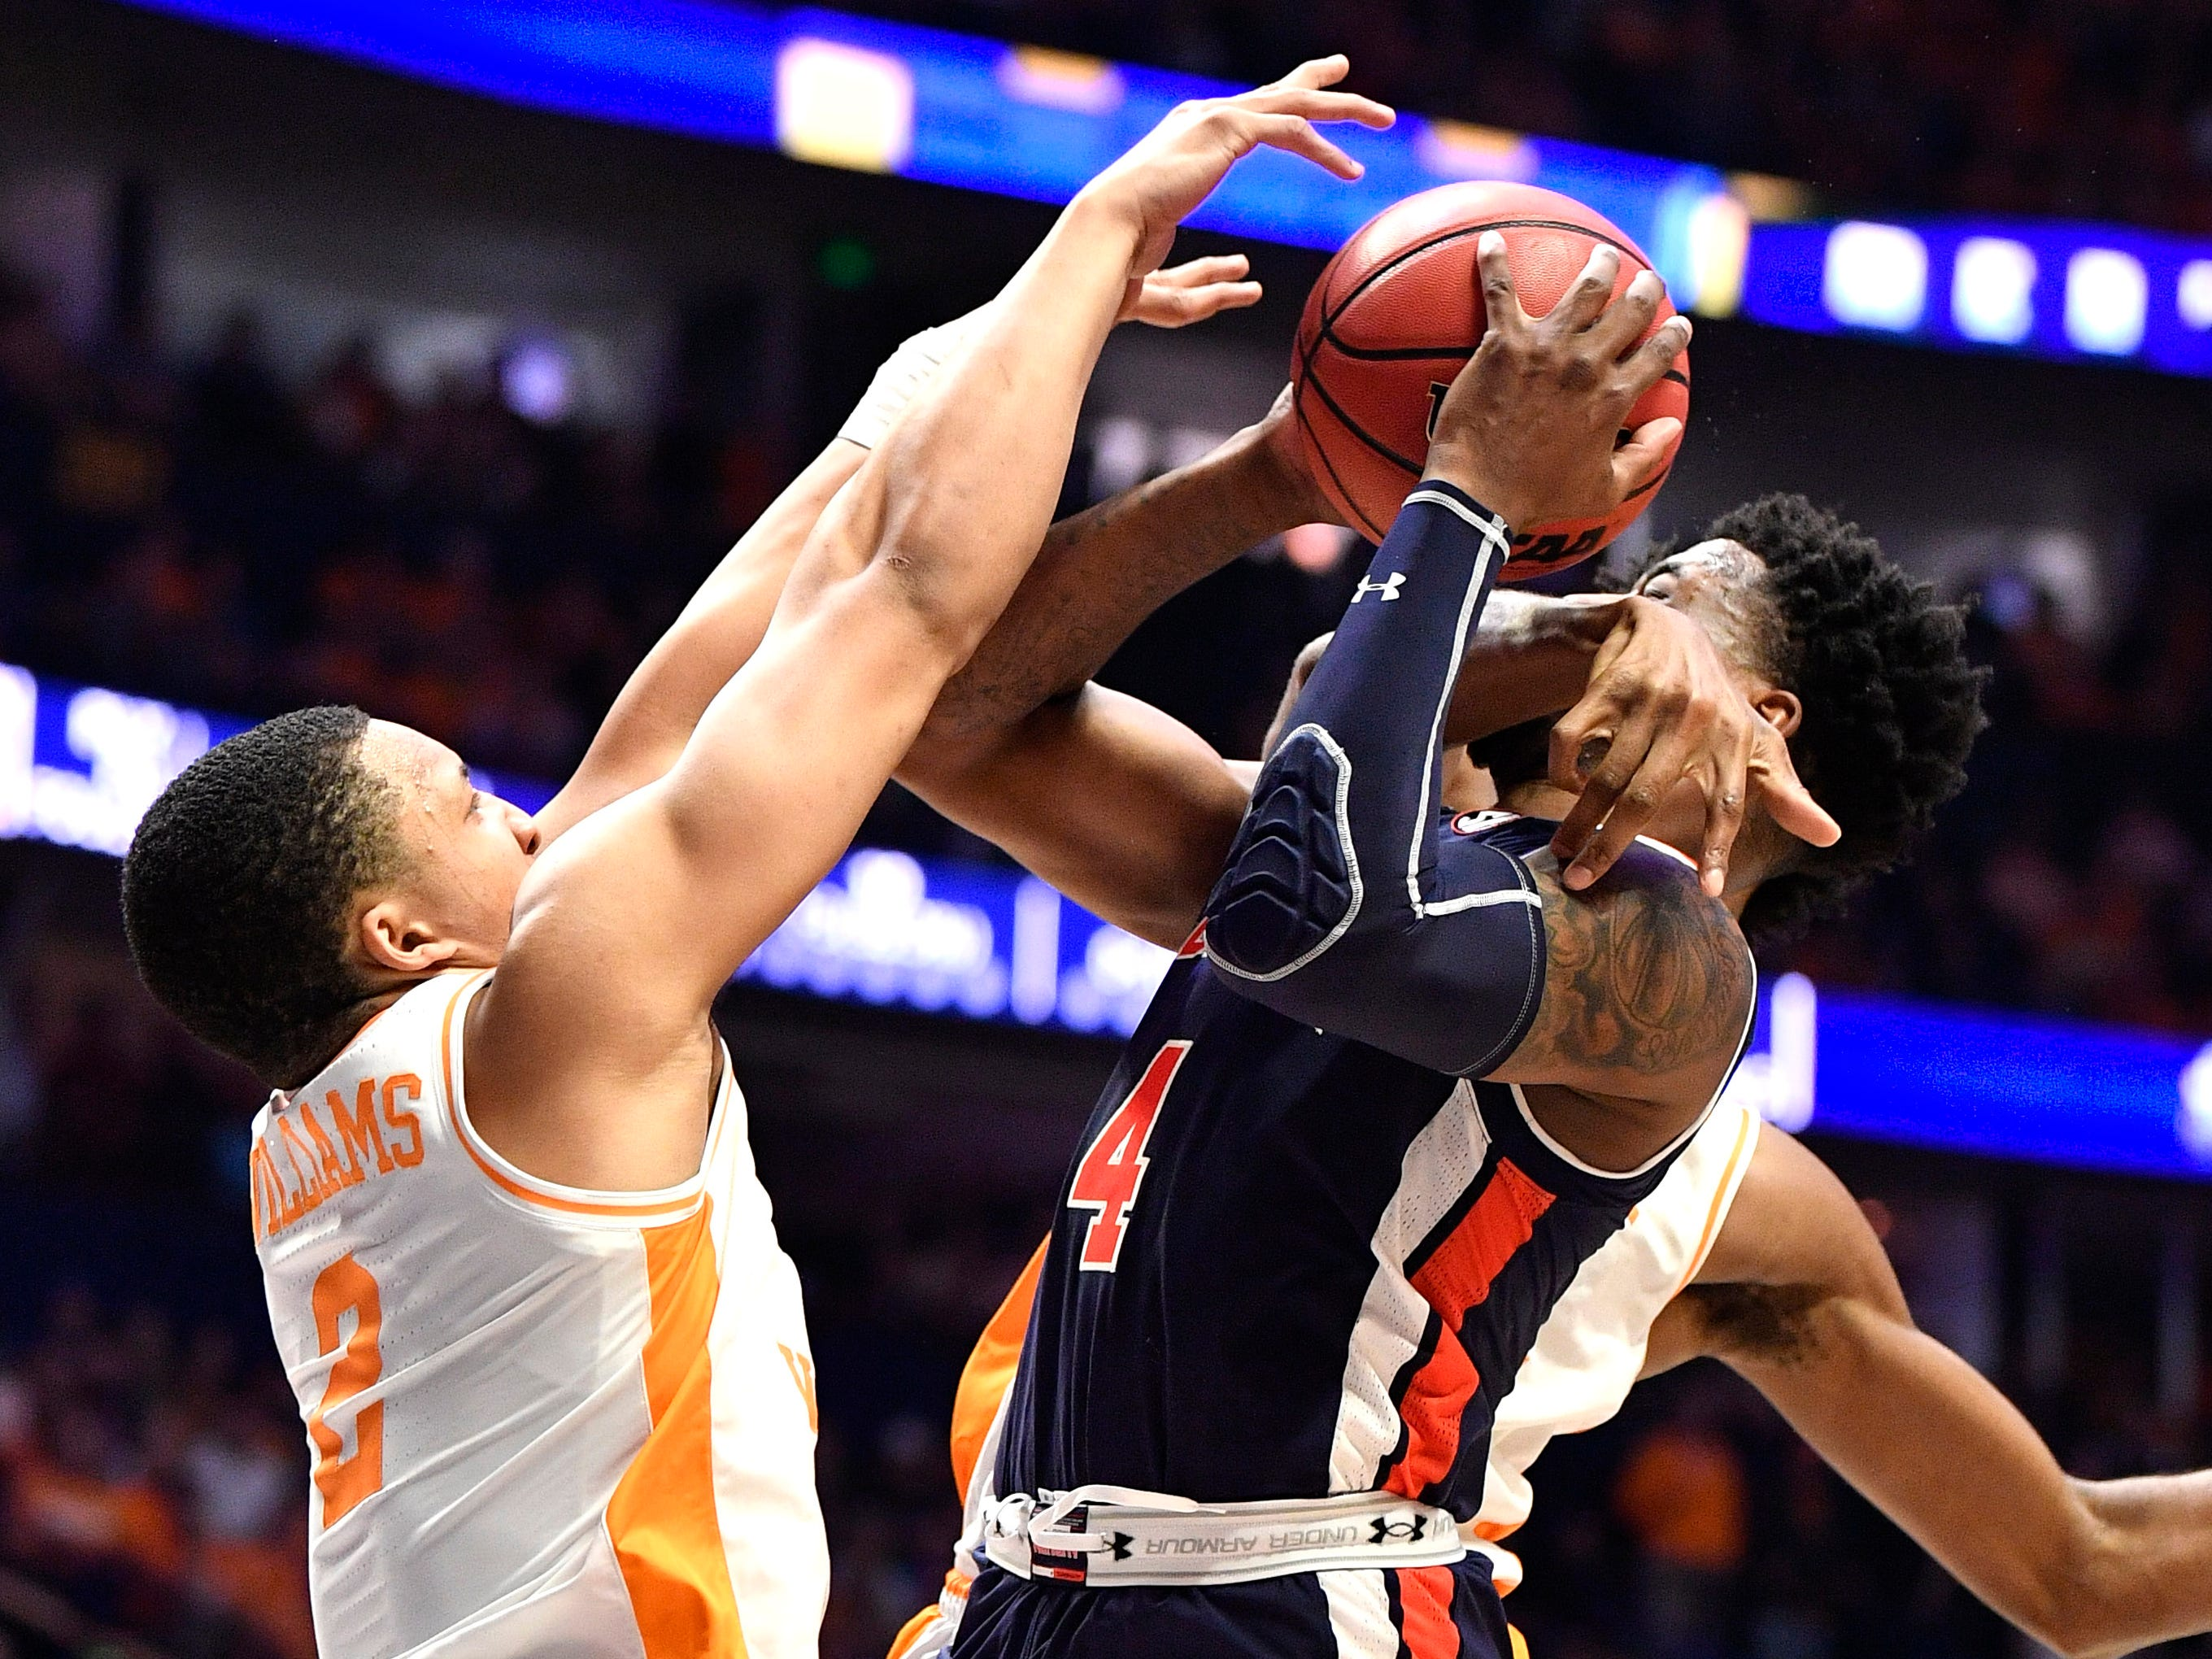 Auburn guard/forward Malik Dunbar (4) tries to take a shot defended by Tennessee forward Grant Williams (2) and forward Kyle Alexander (11) during the first half of the SEC Men's Basketball Tournament championship game at Bridgestone Arena in Nashville, Tenn., Sunday, March 17, 2019.